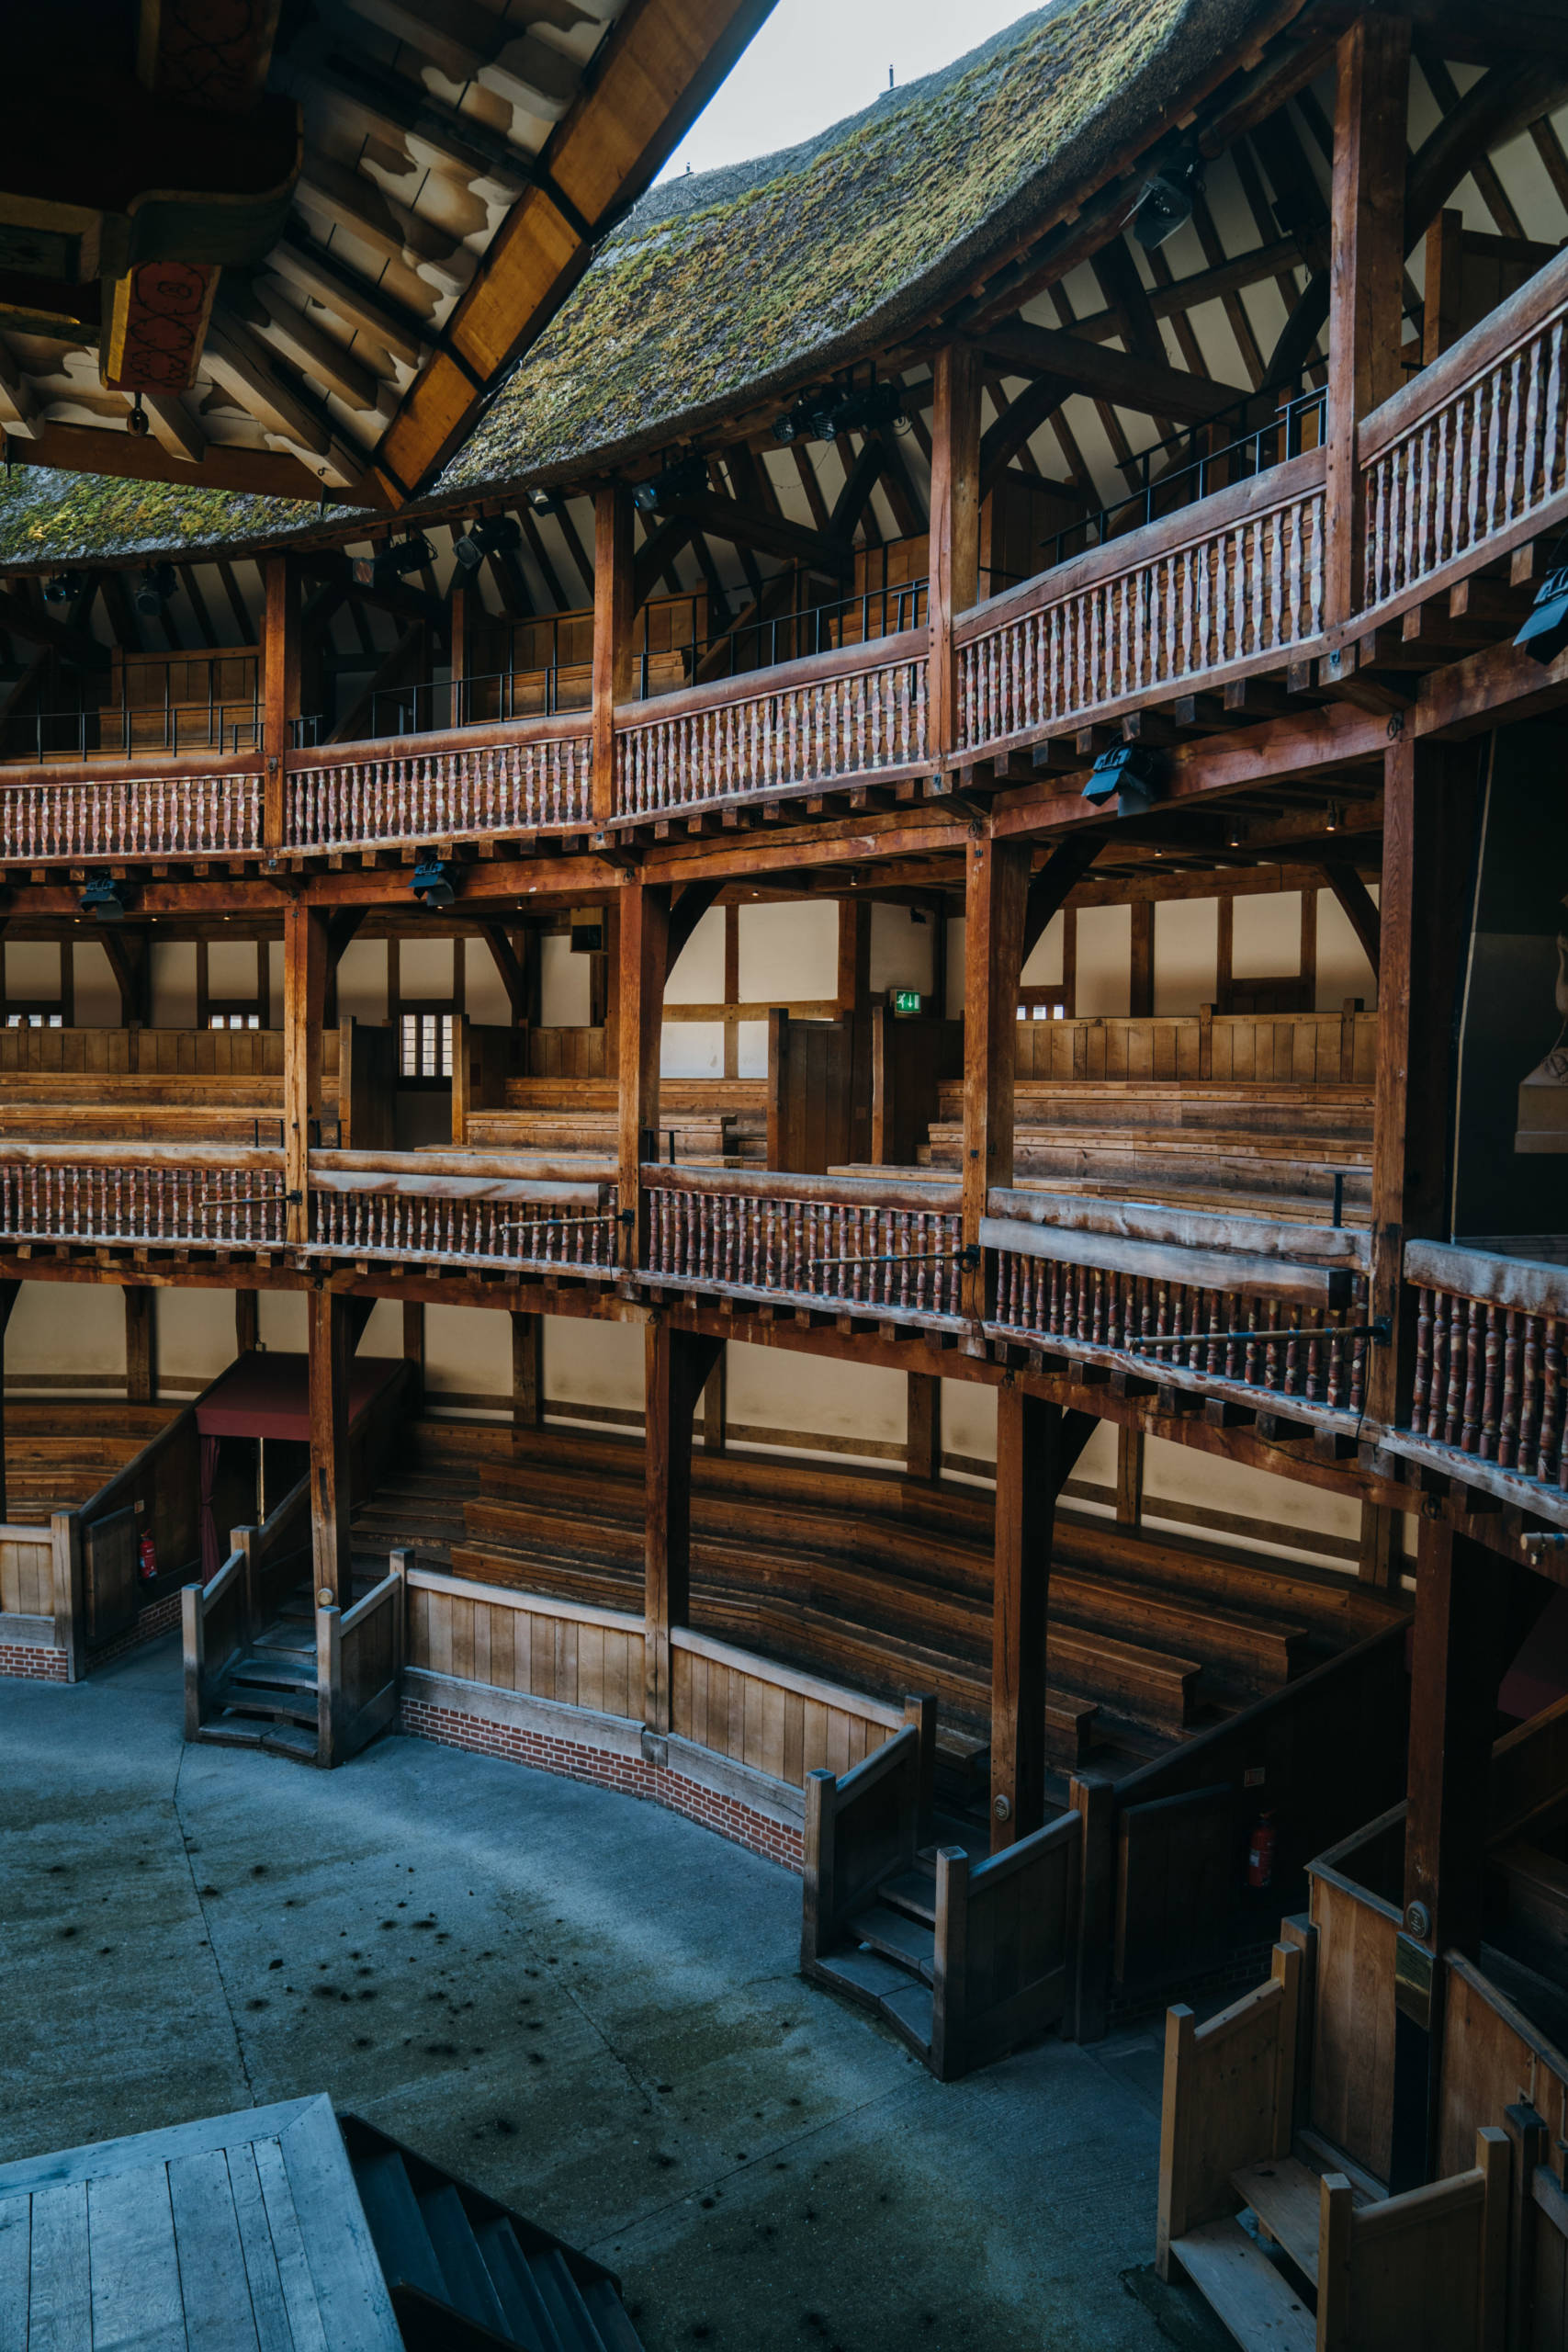 The view from the balcony of a theatre looks out to an empty seating area